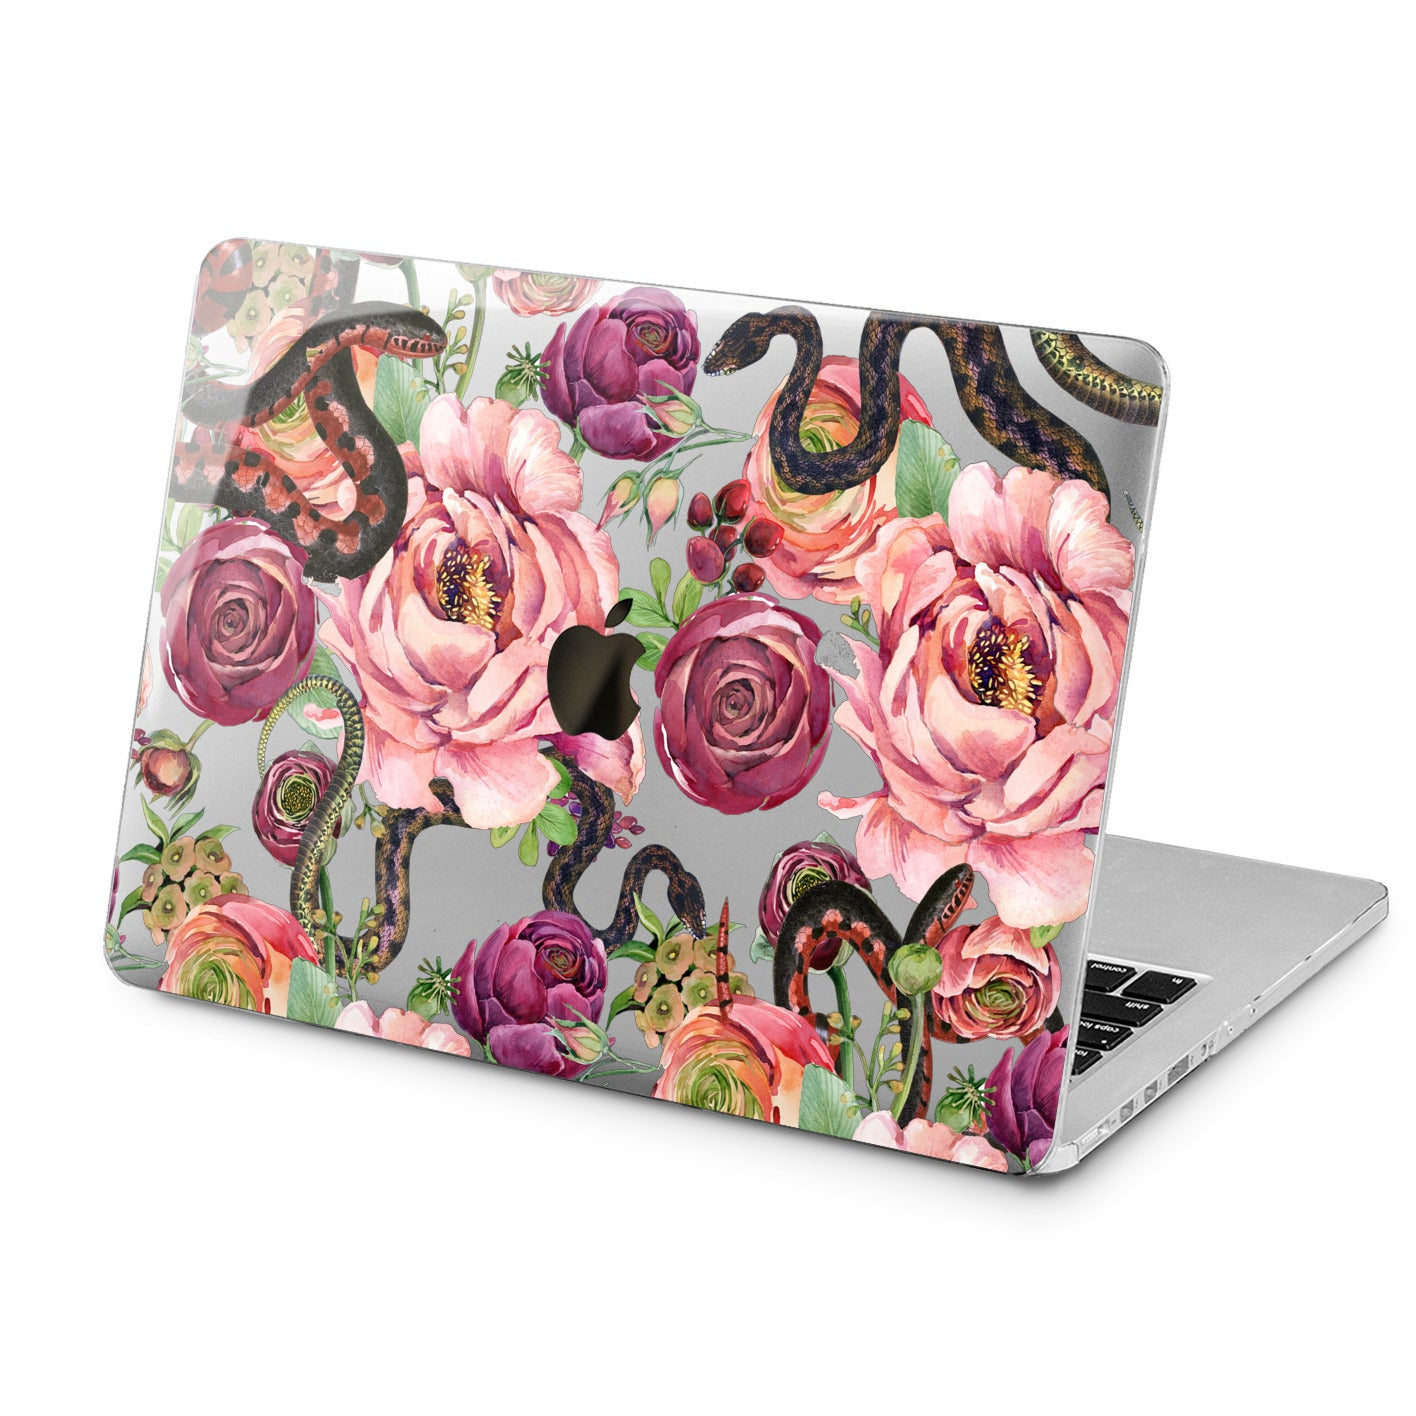 Lex Altern Lex Altern Beautiful Floral Snakes Case for your Laptop Apple Macbook.